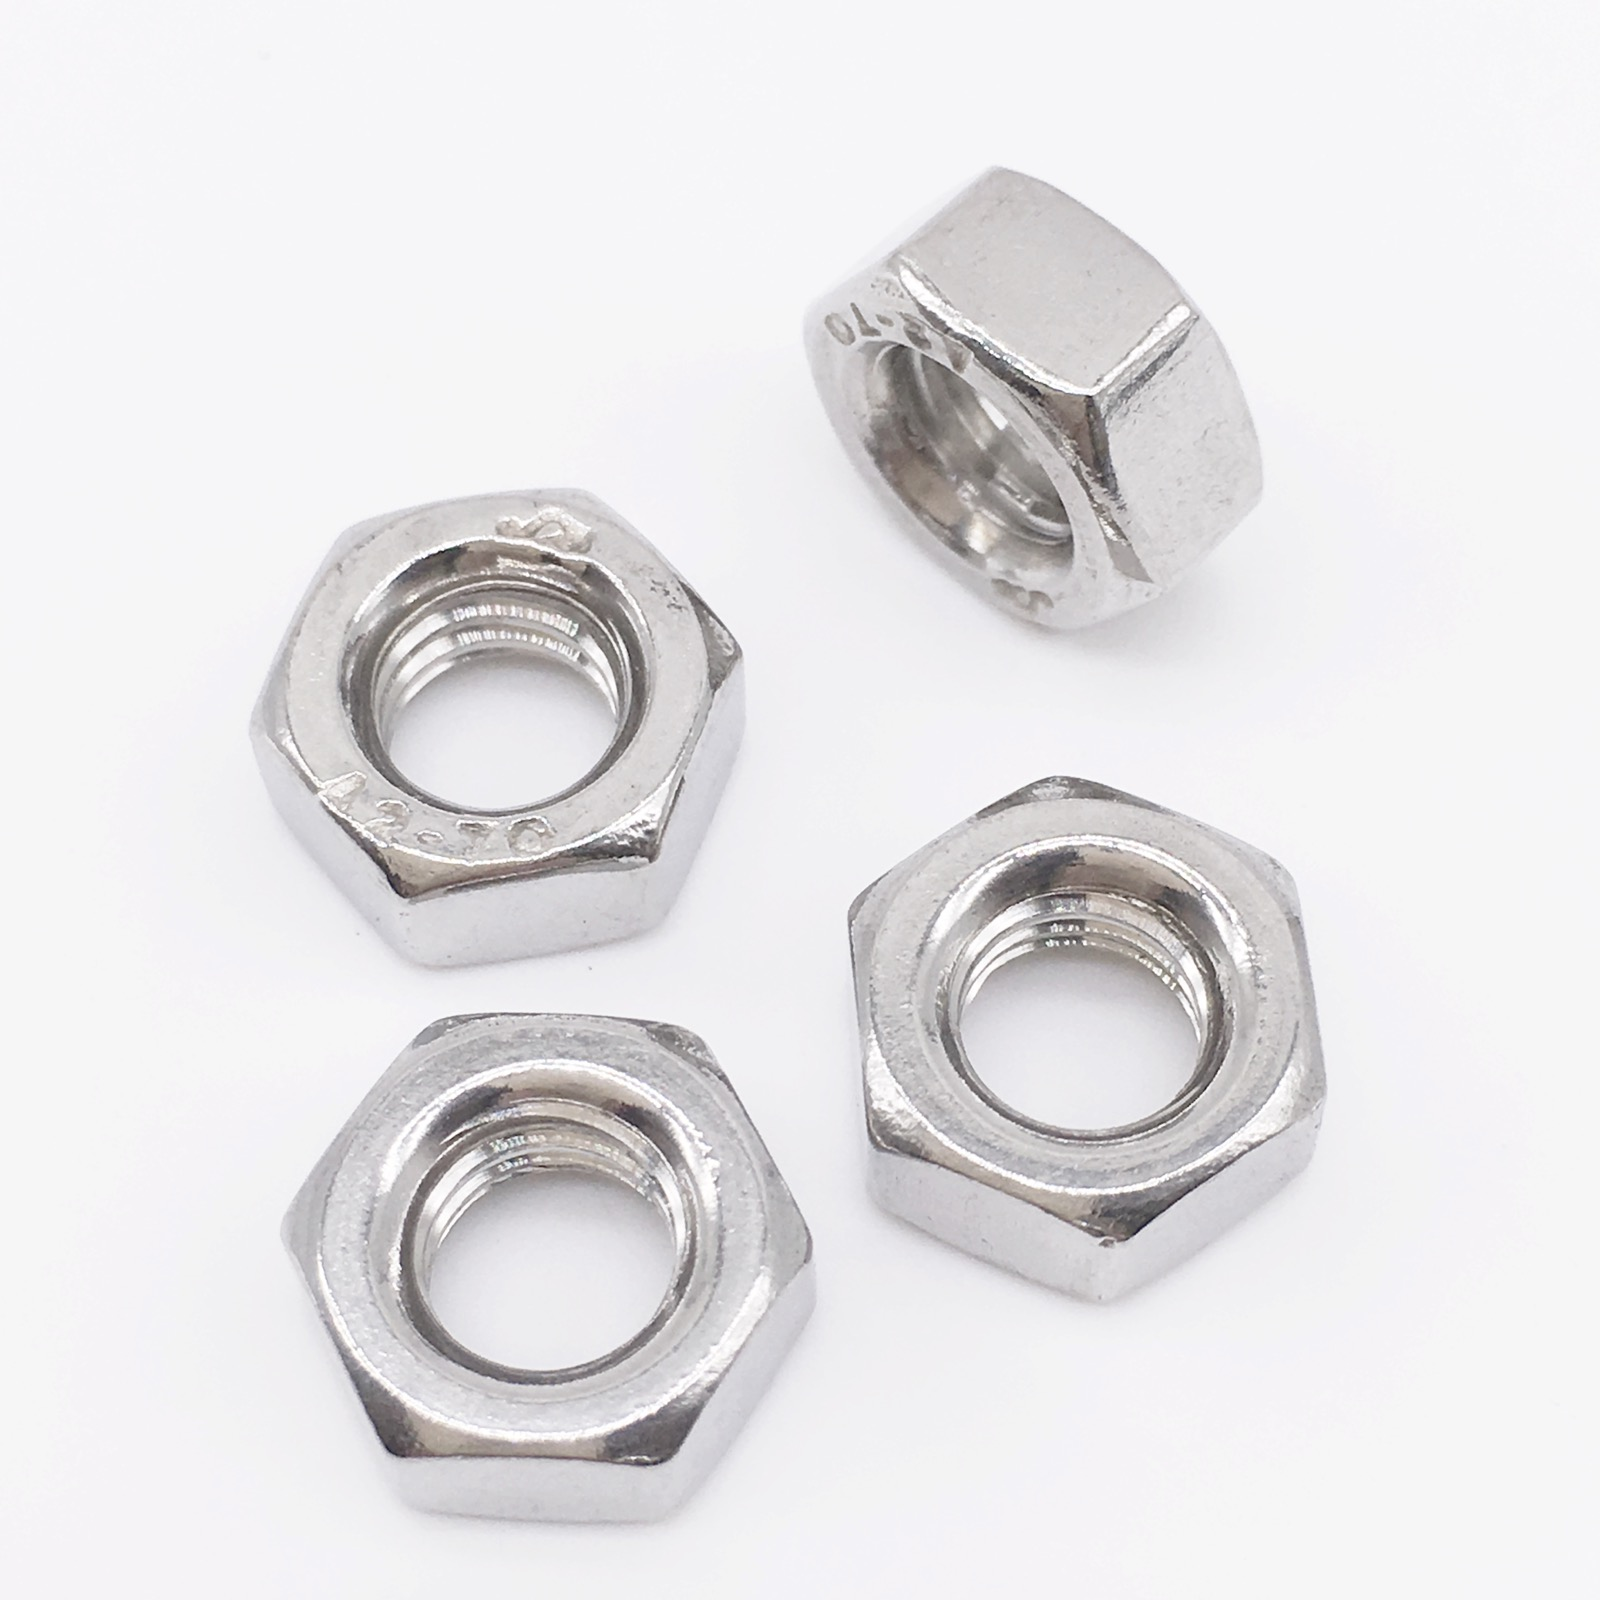 M1 M1.2 M1.6 M2 M2.5 M3 M4 M5 M6 M8 M10 M12 M14 M16 M18 M20 Hex Nut Micro Small Nuts Stainless Steel DIN934 brass hex nut brass nut m2 m2 5 m3 m4 m5 m6 m8 m10 m12 m14 m16 m18 m20 metric thread